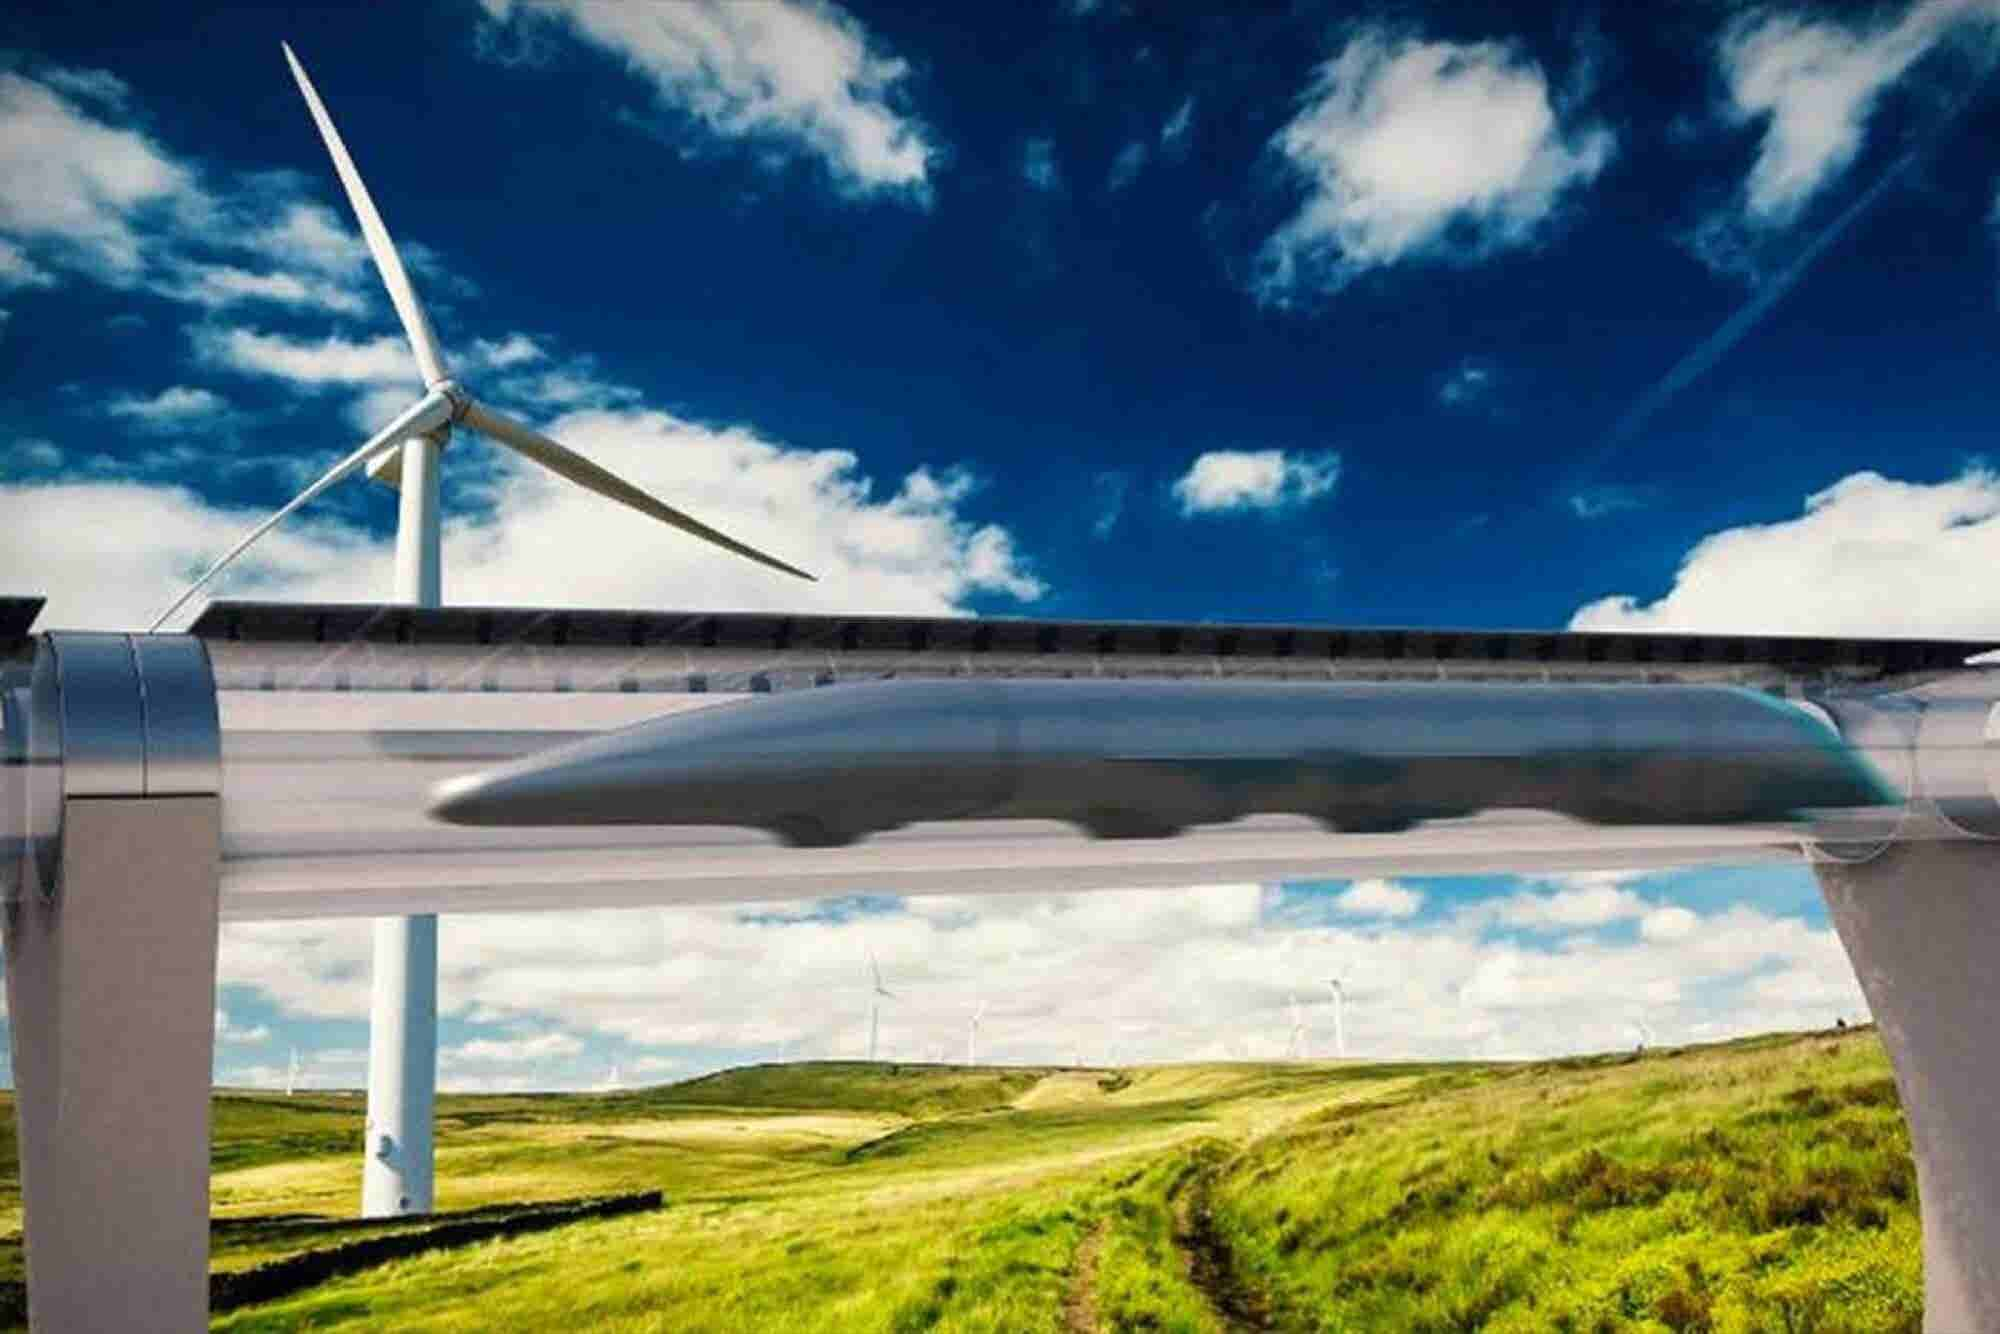 A Building Permit Was Filed for Elon Musk's Hyperloop in California